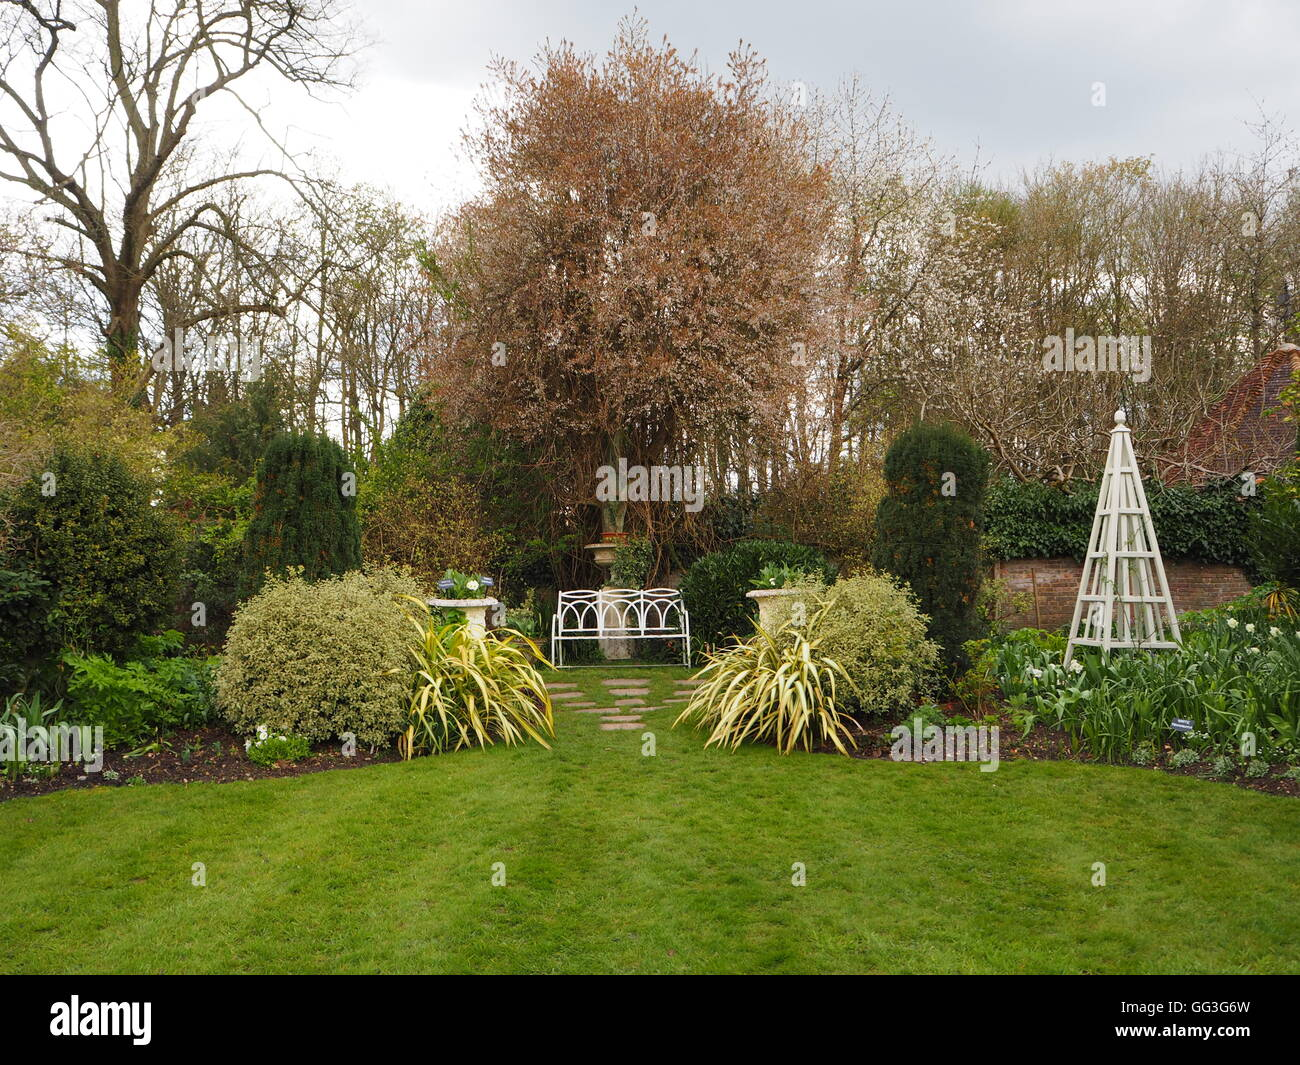 Chenies Manor white garden with lawn, shrubs, variegated greenery, white bench, urns, paving slabs and obelisk in - Stock Image